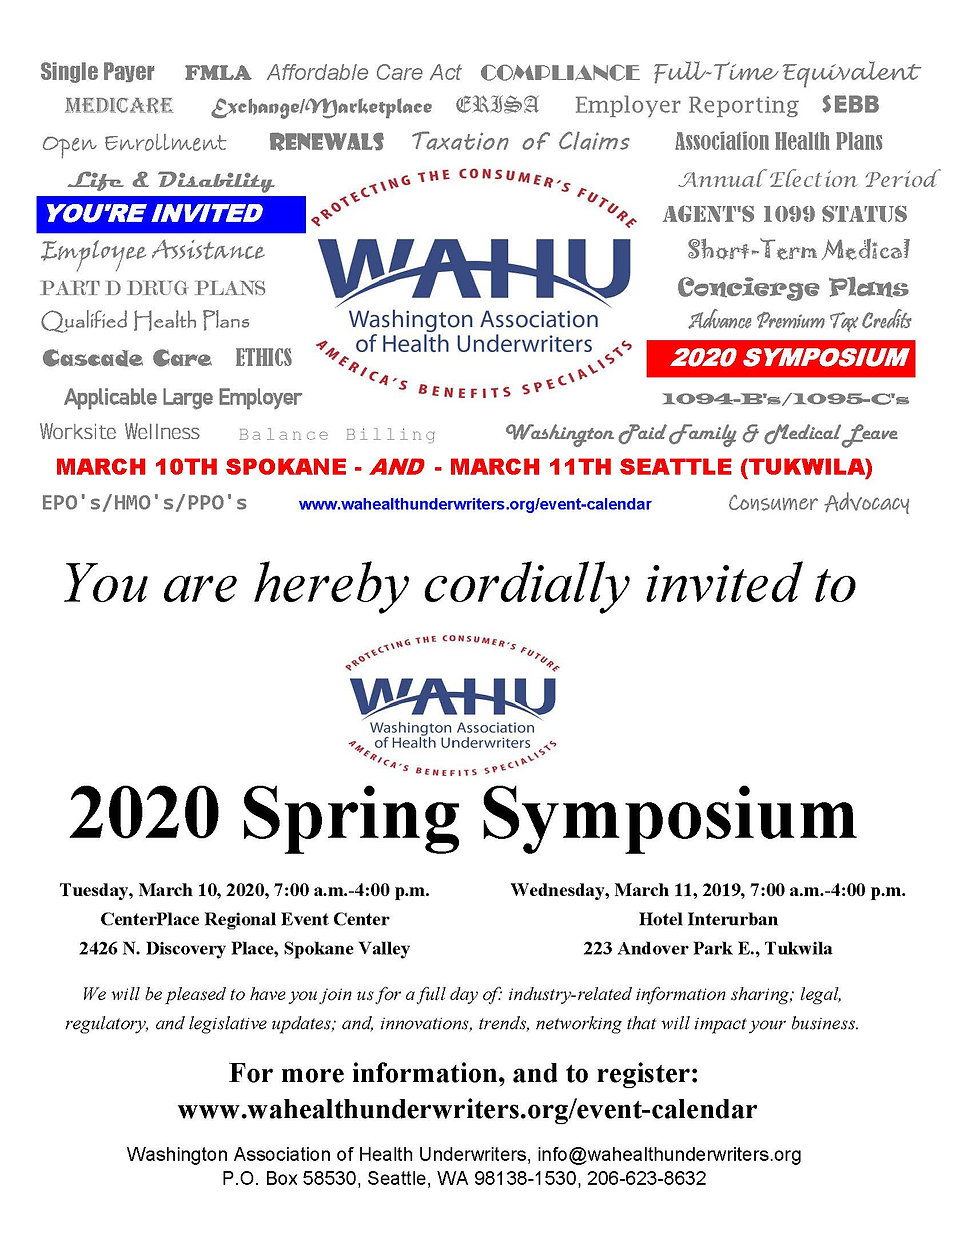 WAHU Symposium 2020_Flyer.jpg